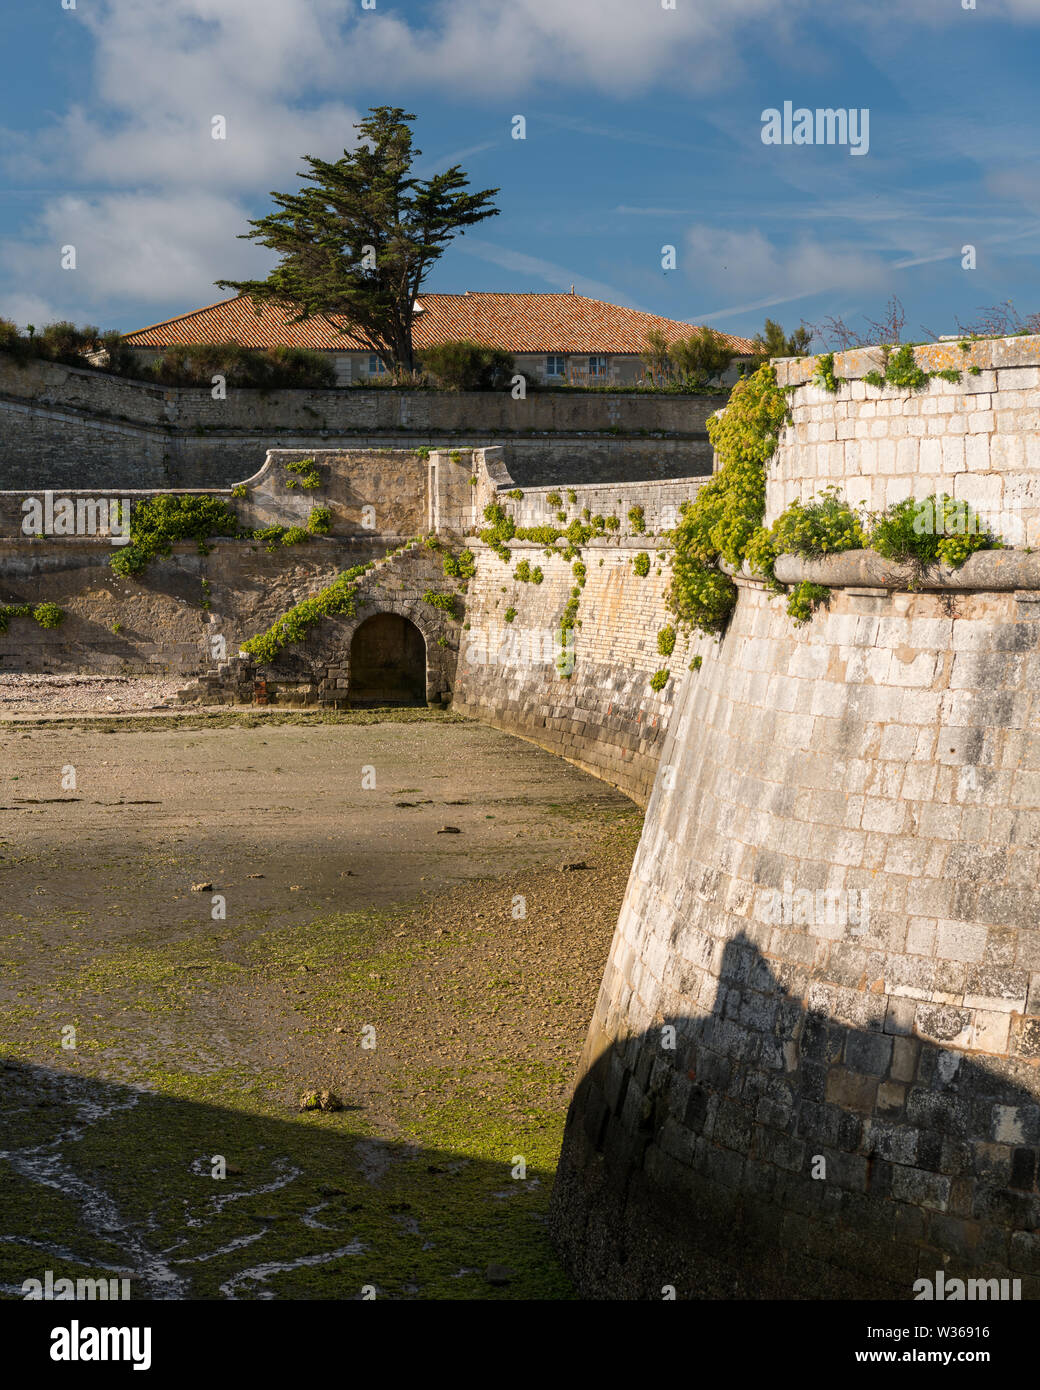 the vauban fortifications of Saint Martin de Re (France) on a sunny day with a blue sky - Stock Image